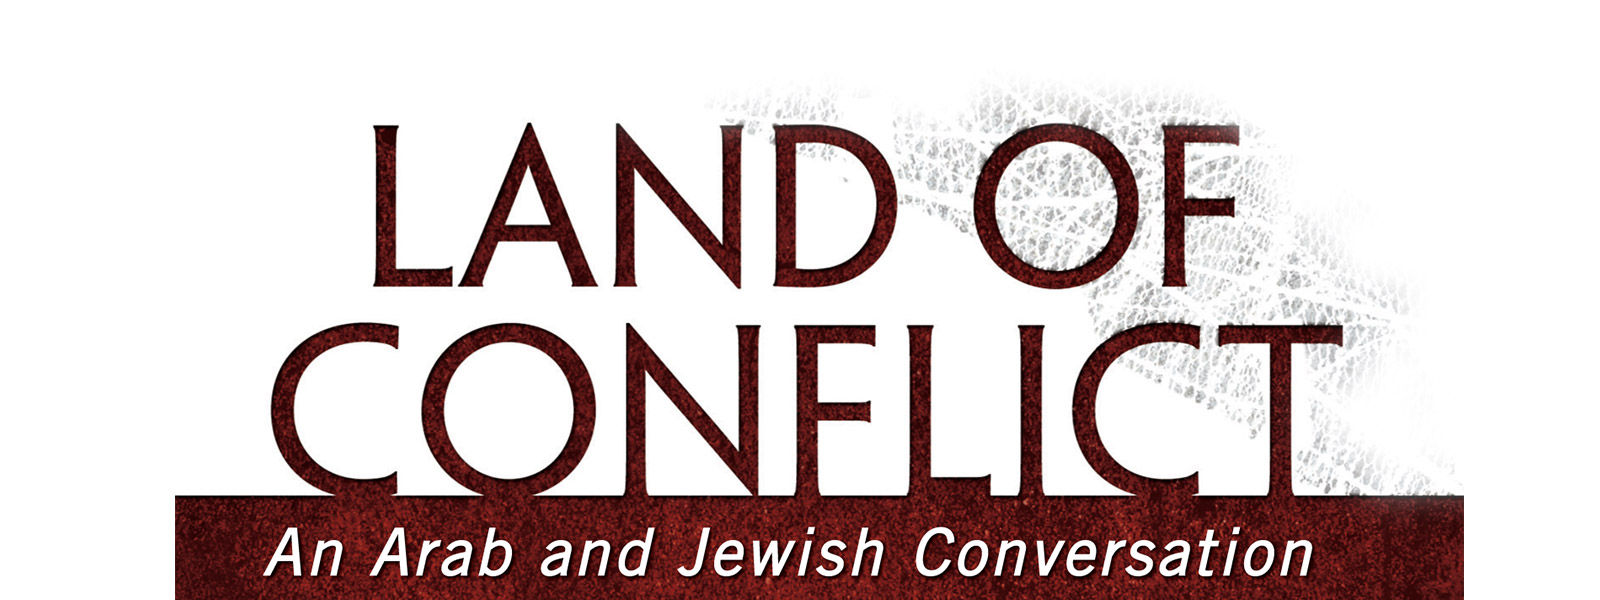 Following Jesus in a Land of Conflict: An Arab and Jewish Conversation